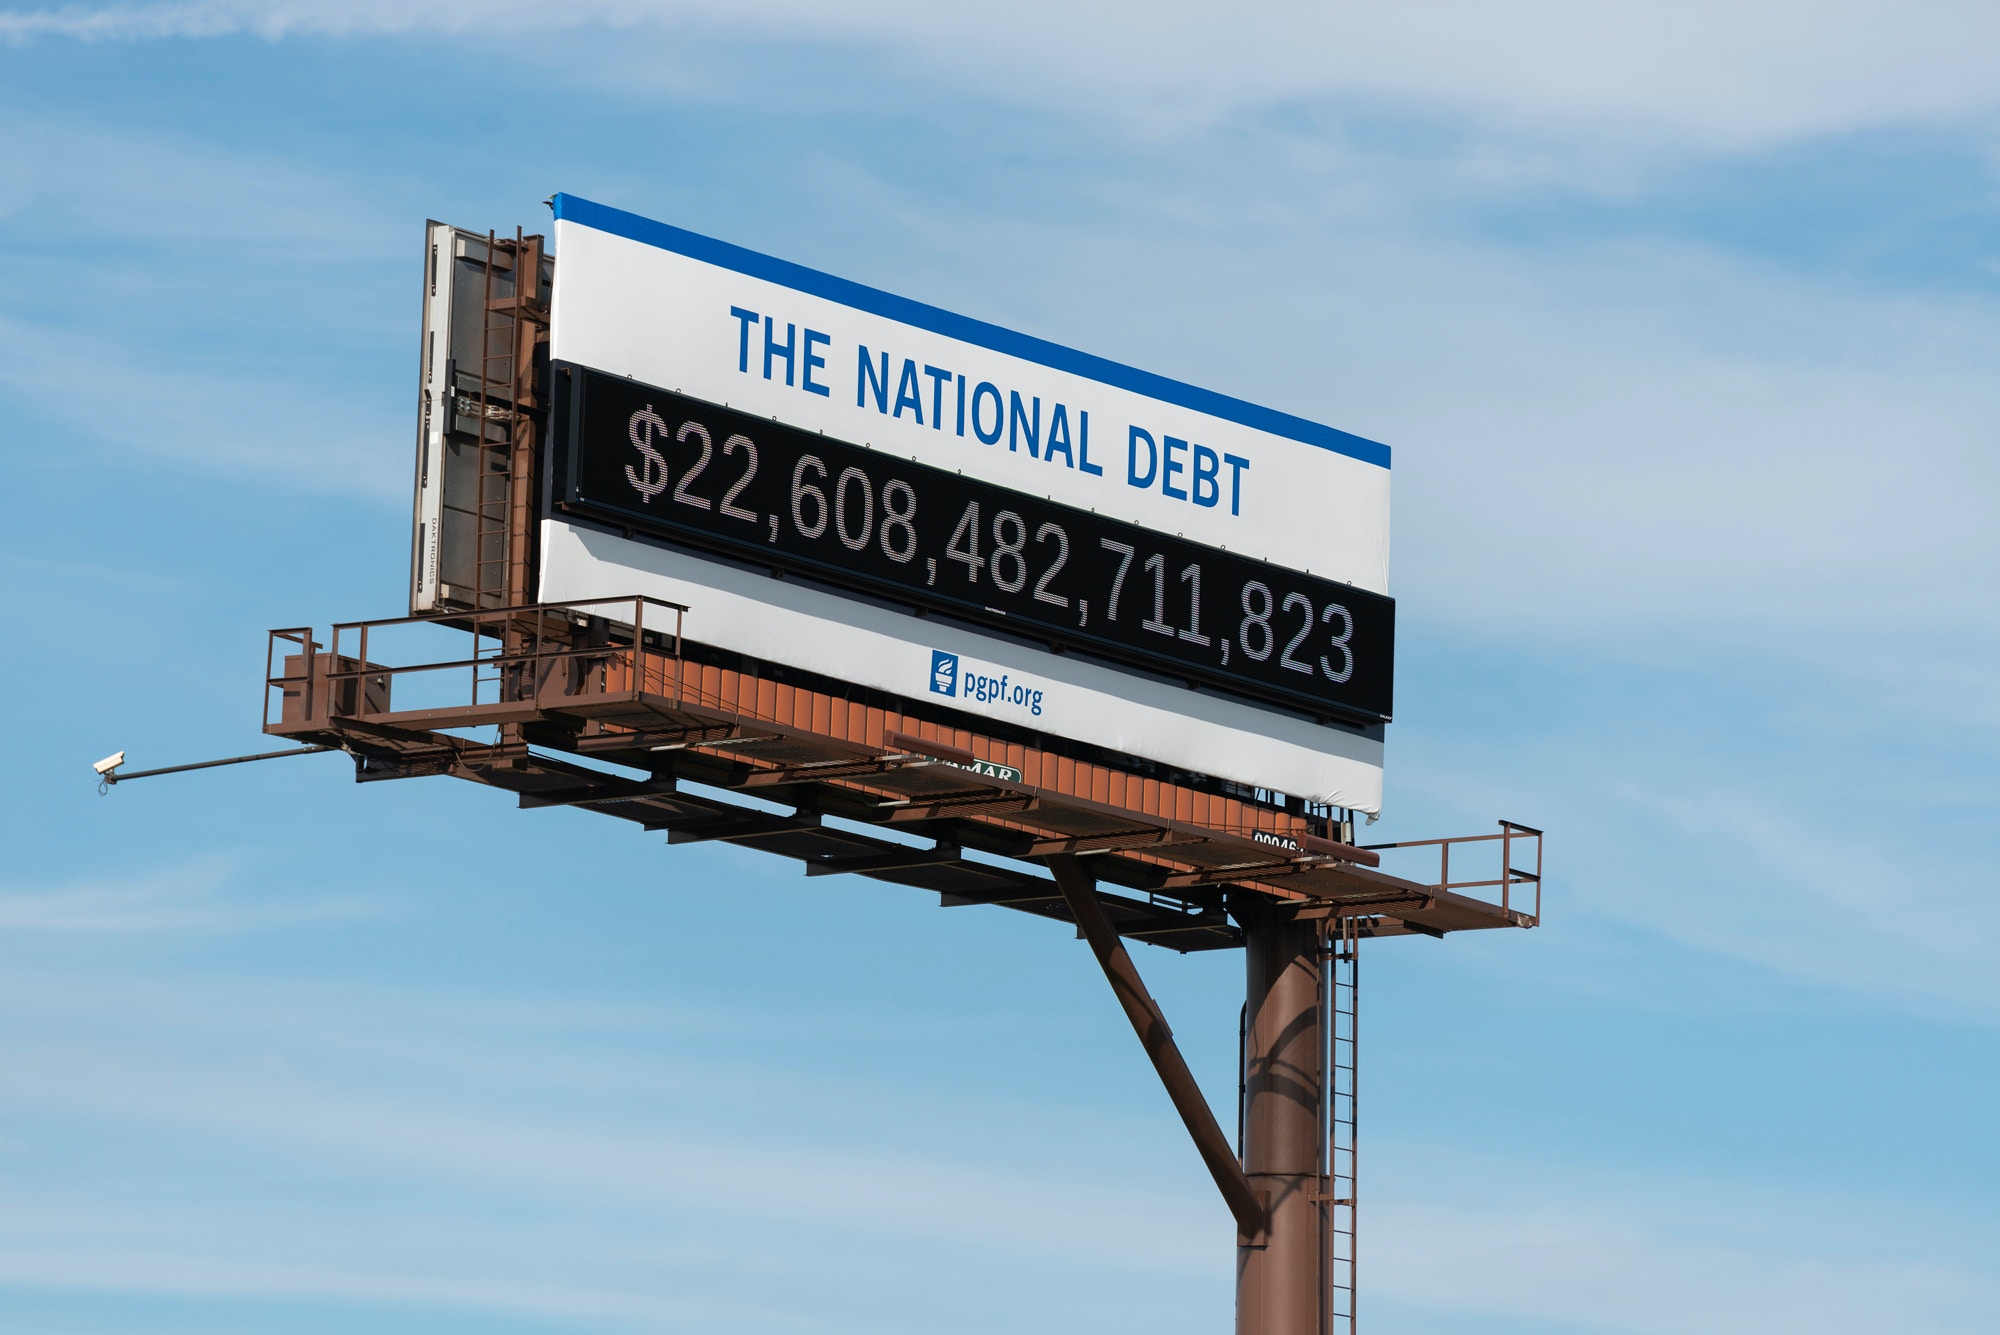 Billboard showing the national debt and each Americans share is displayed on Sept. 24, 2019 in downtown Cleveland, Ohio.